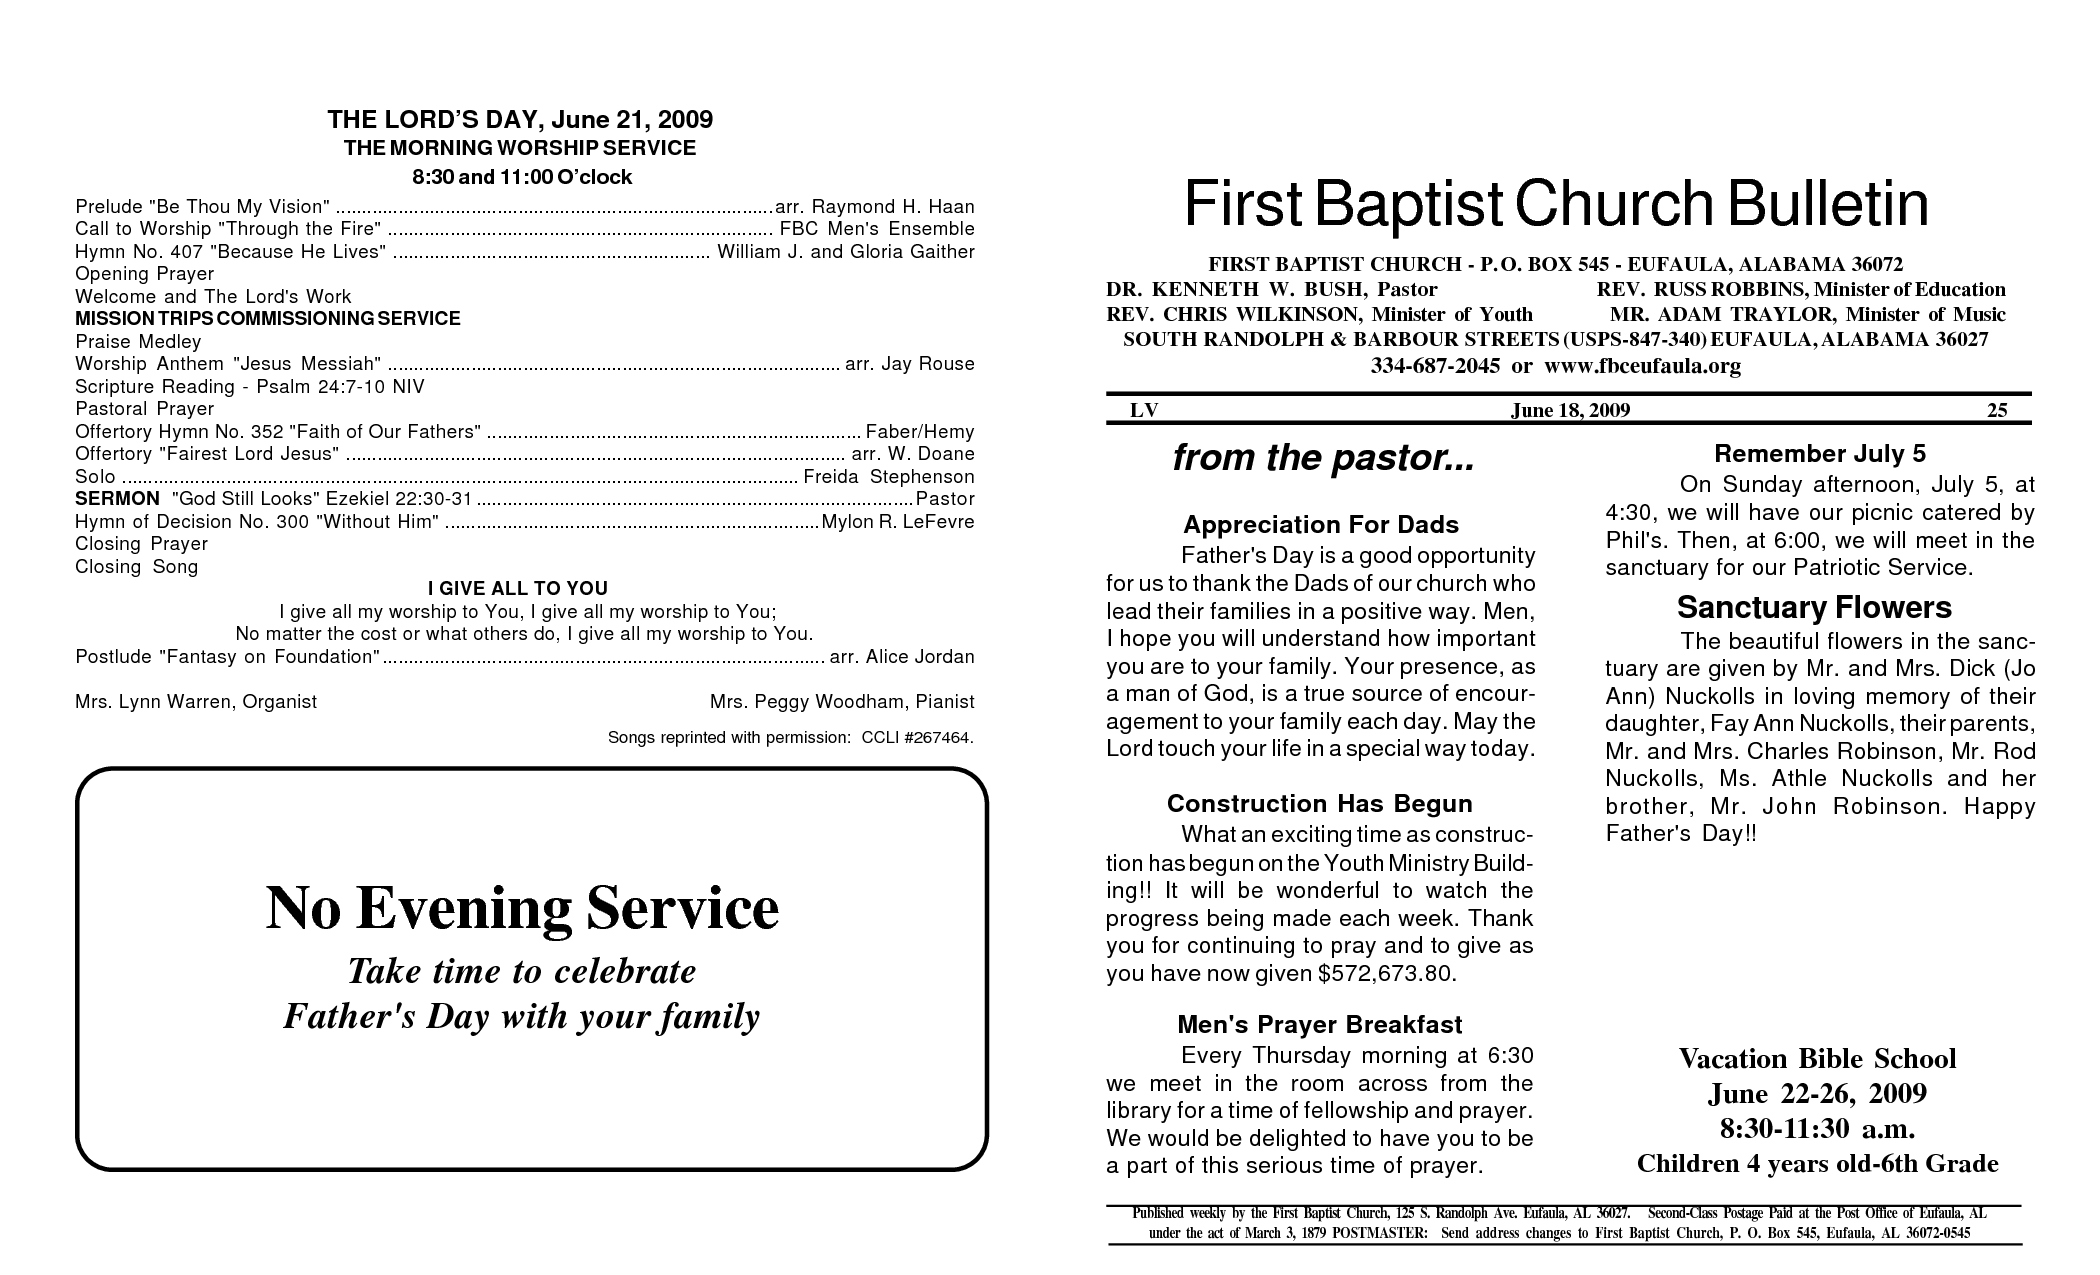 memorial service programs sample first baptist church bulletin no evening service